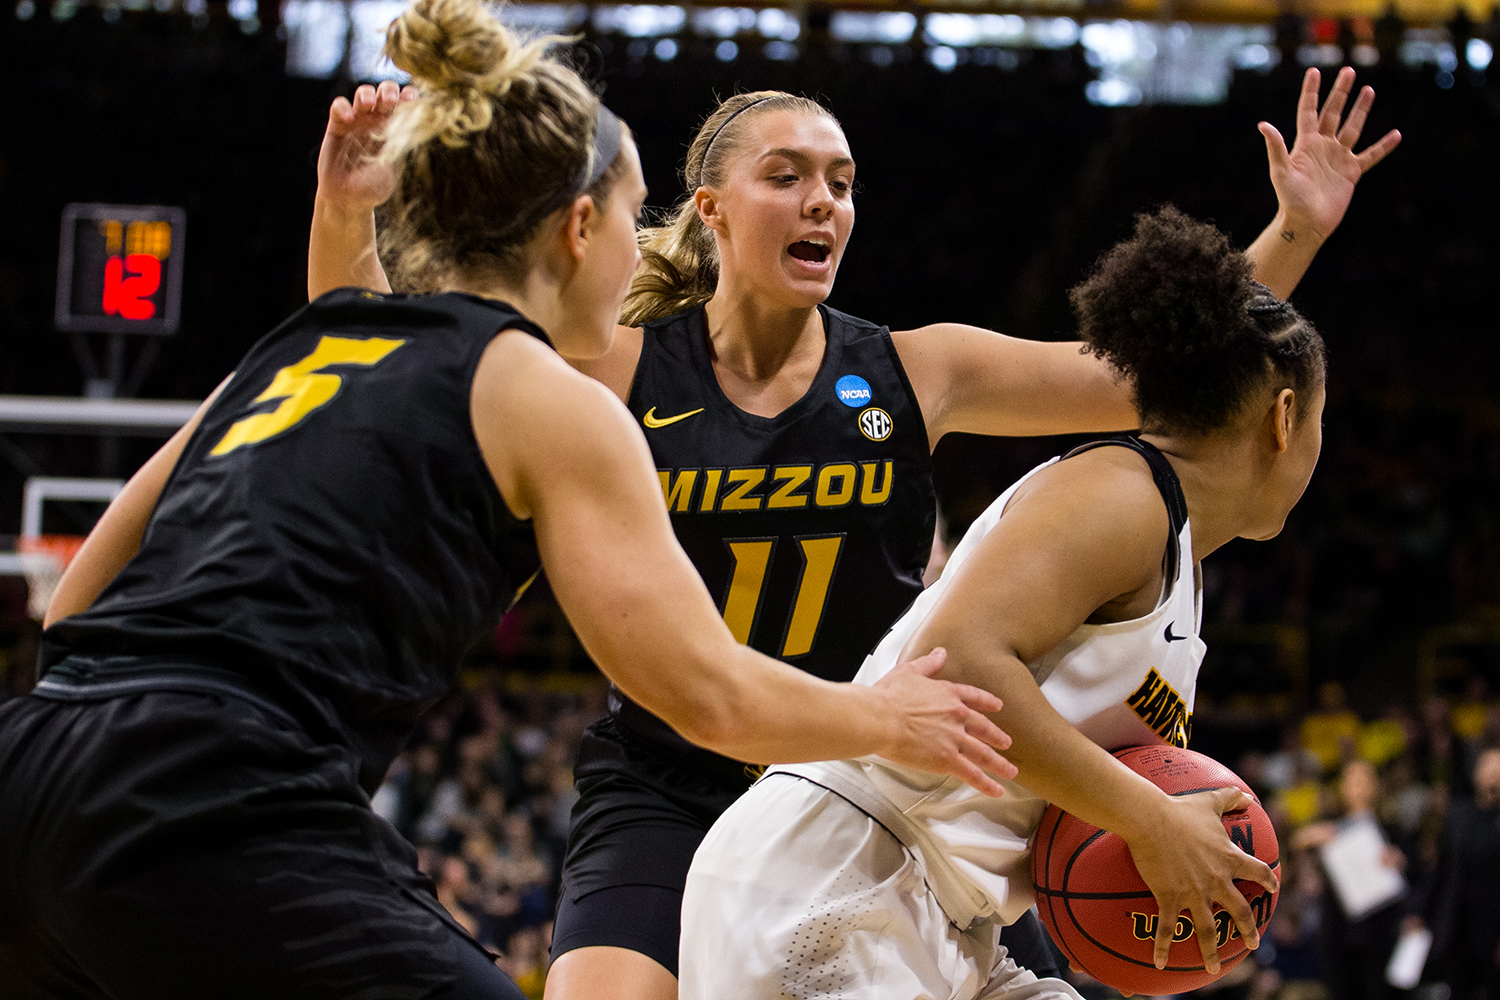 Iowa+guard+Tania+Davis+%2811%29+looks+for+a+teammate+to+pass+the+ball+to+during+the+Iowa%2FMissouri+NCAA+Tournament+second+round+women%E2%80%99s+basketball+game+in+Carver-Hawkeye+Arena+in+Iowa+City%2C+Iowa+on+Sunday%2C+March+24%2C+2019.+The+Hawkeyes+defeated+the+Tigers+68-52.